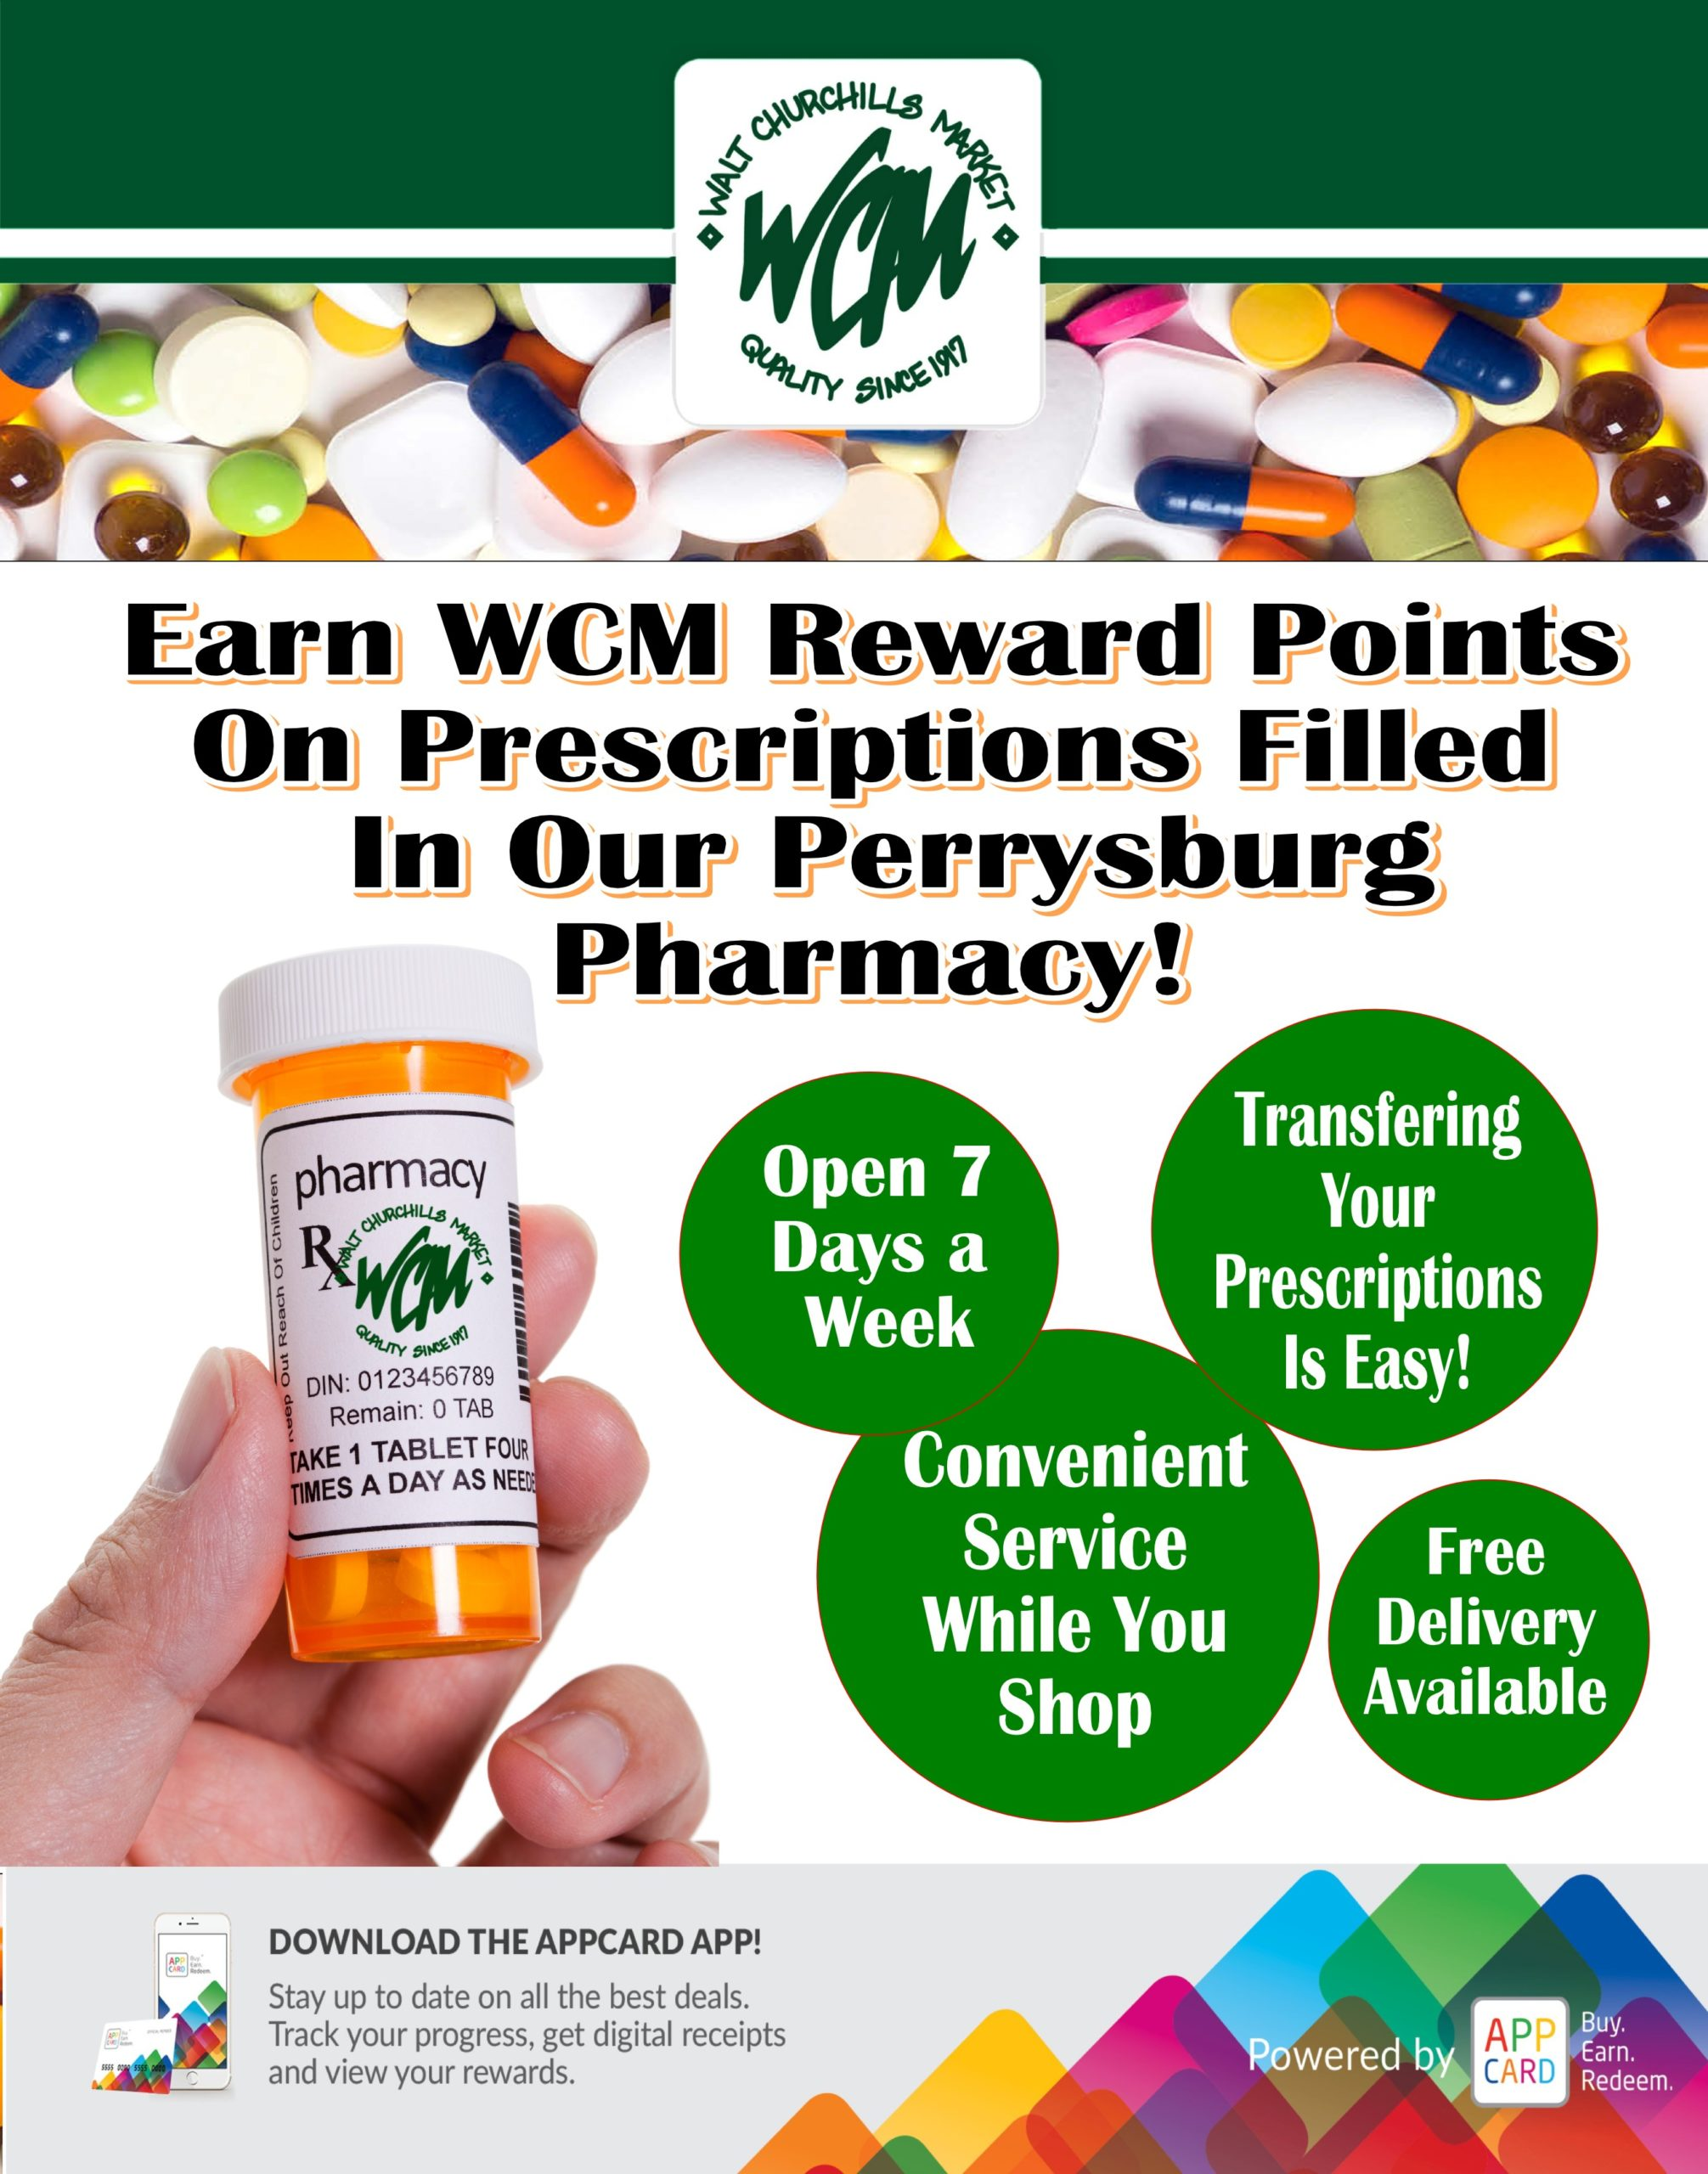 Earn WCM Rewards Points on prescriptions filled in our Perrysburg Pharmacy.